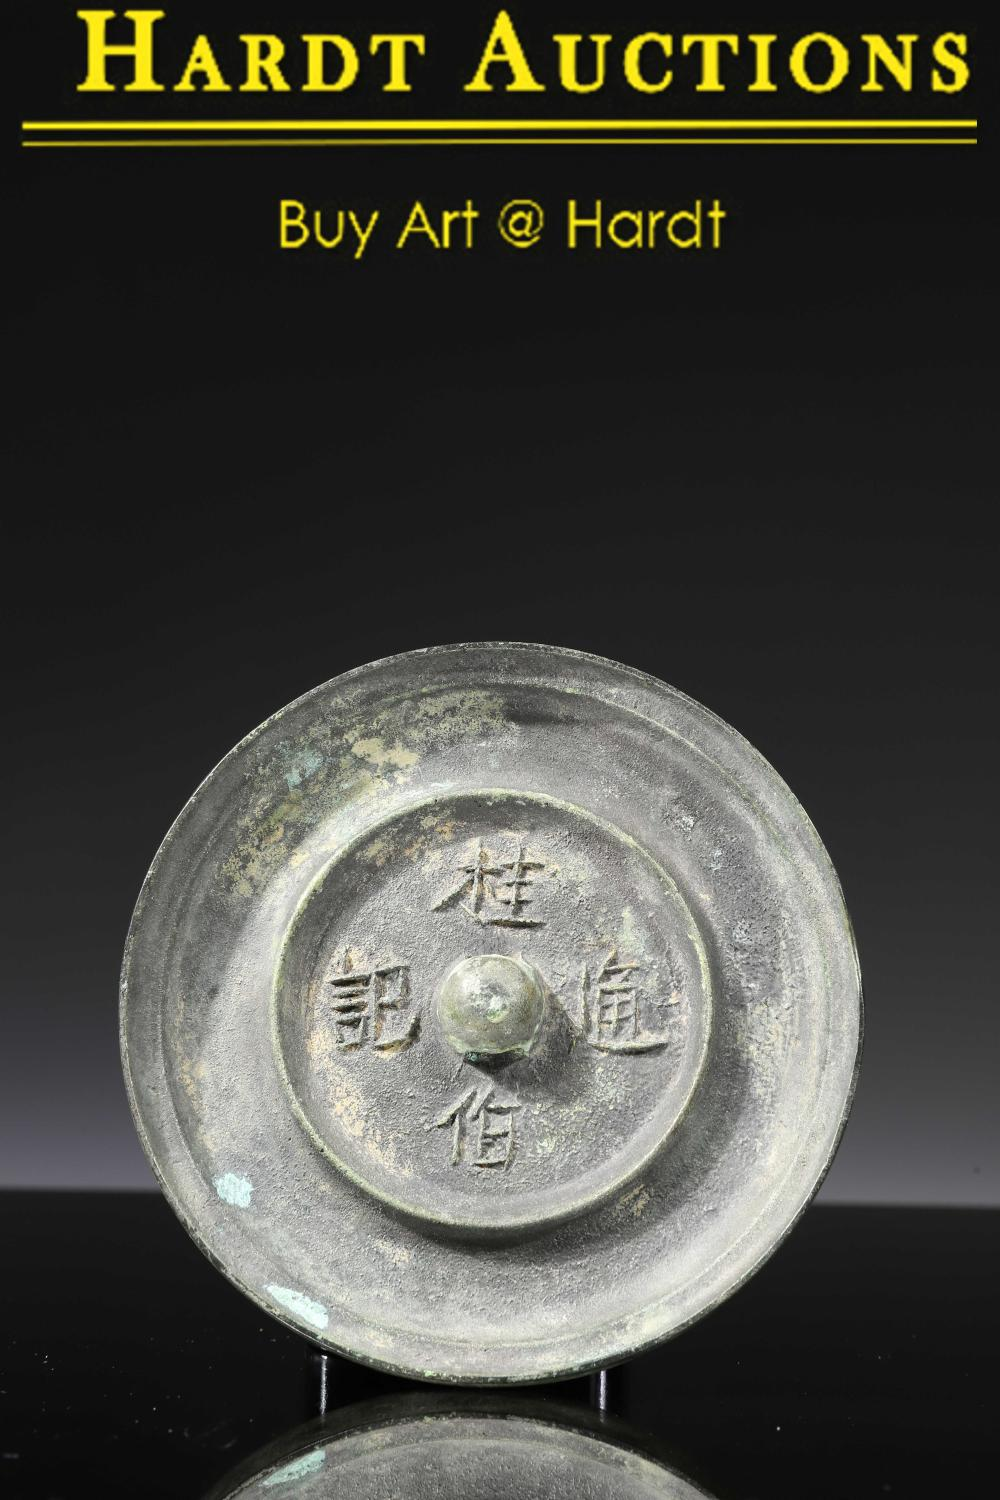 BRONZE MIRROR WITH CHINESE LETTERS 铜镜